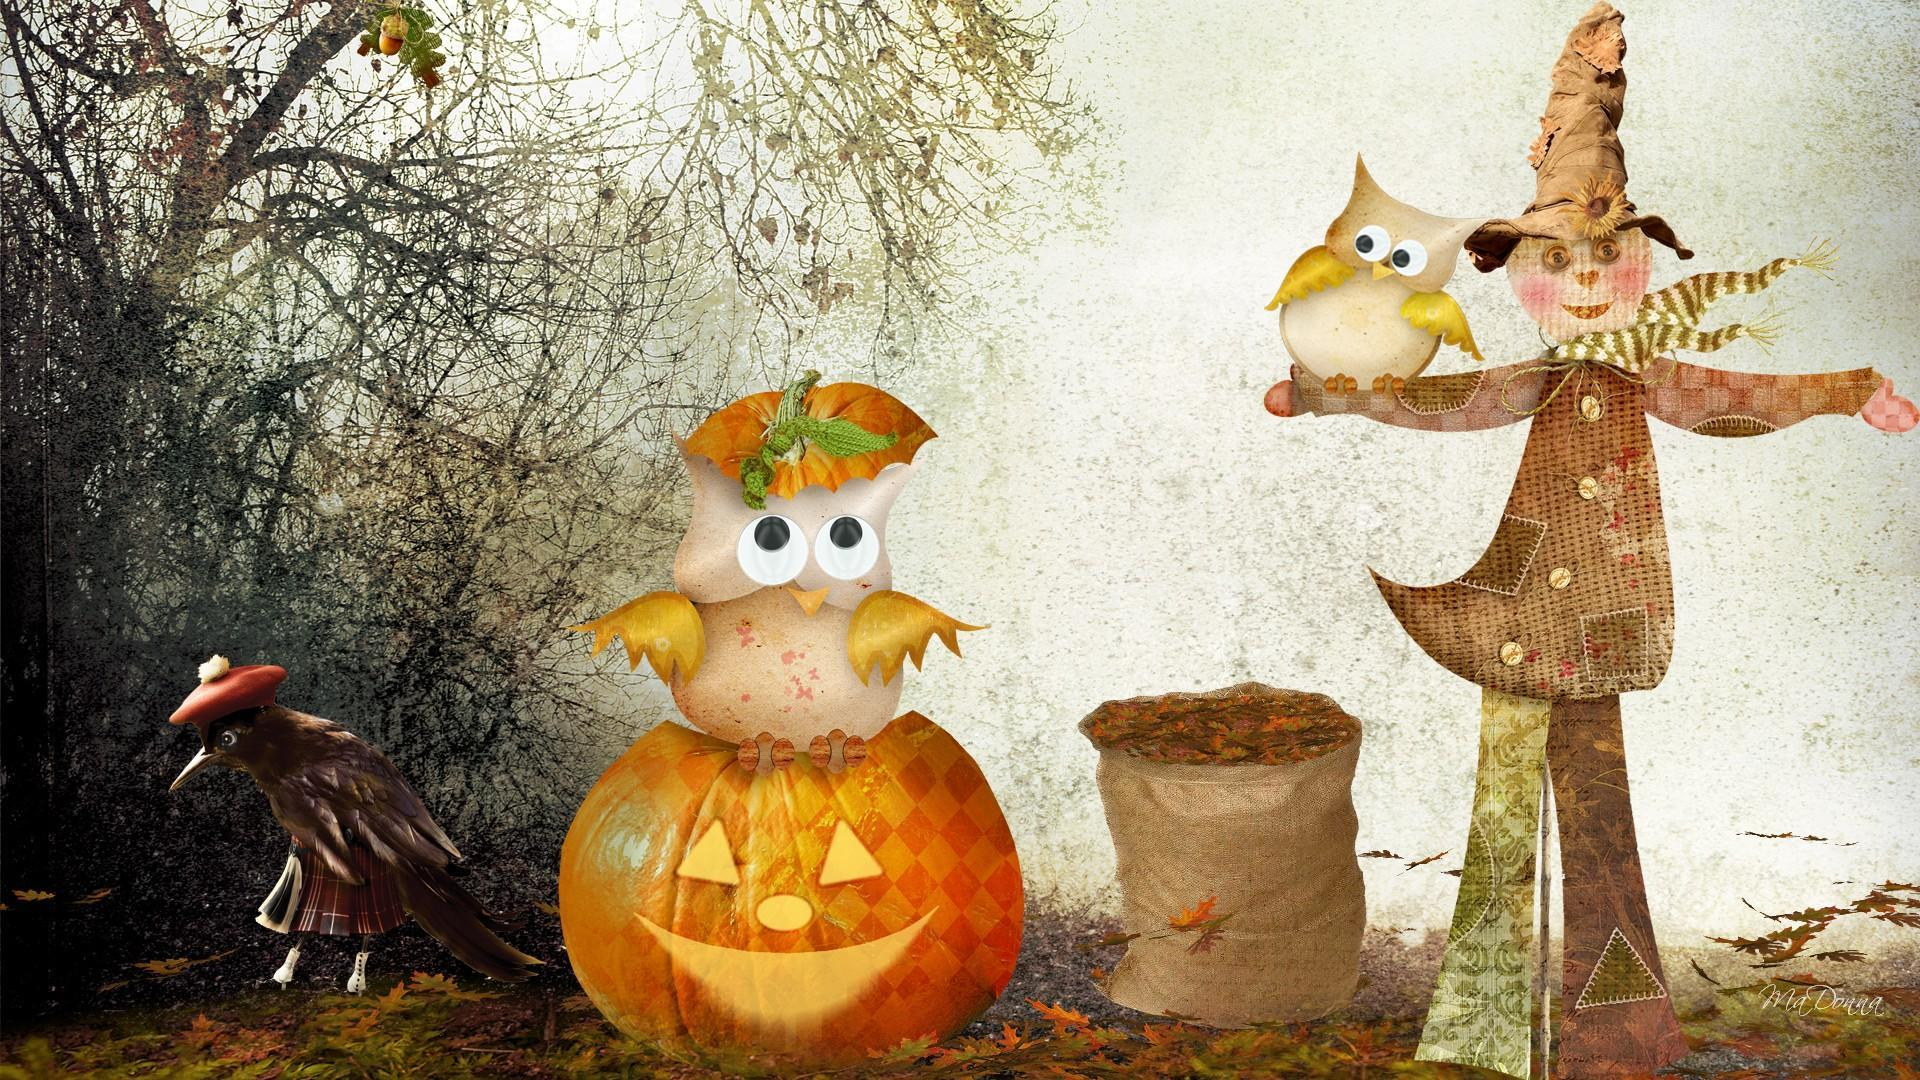 Free Fall Images Desktop Wallpaper Scarecrow Owls Halloween Hd Desktop Wallpaper Widescreen